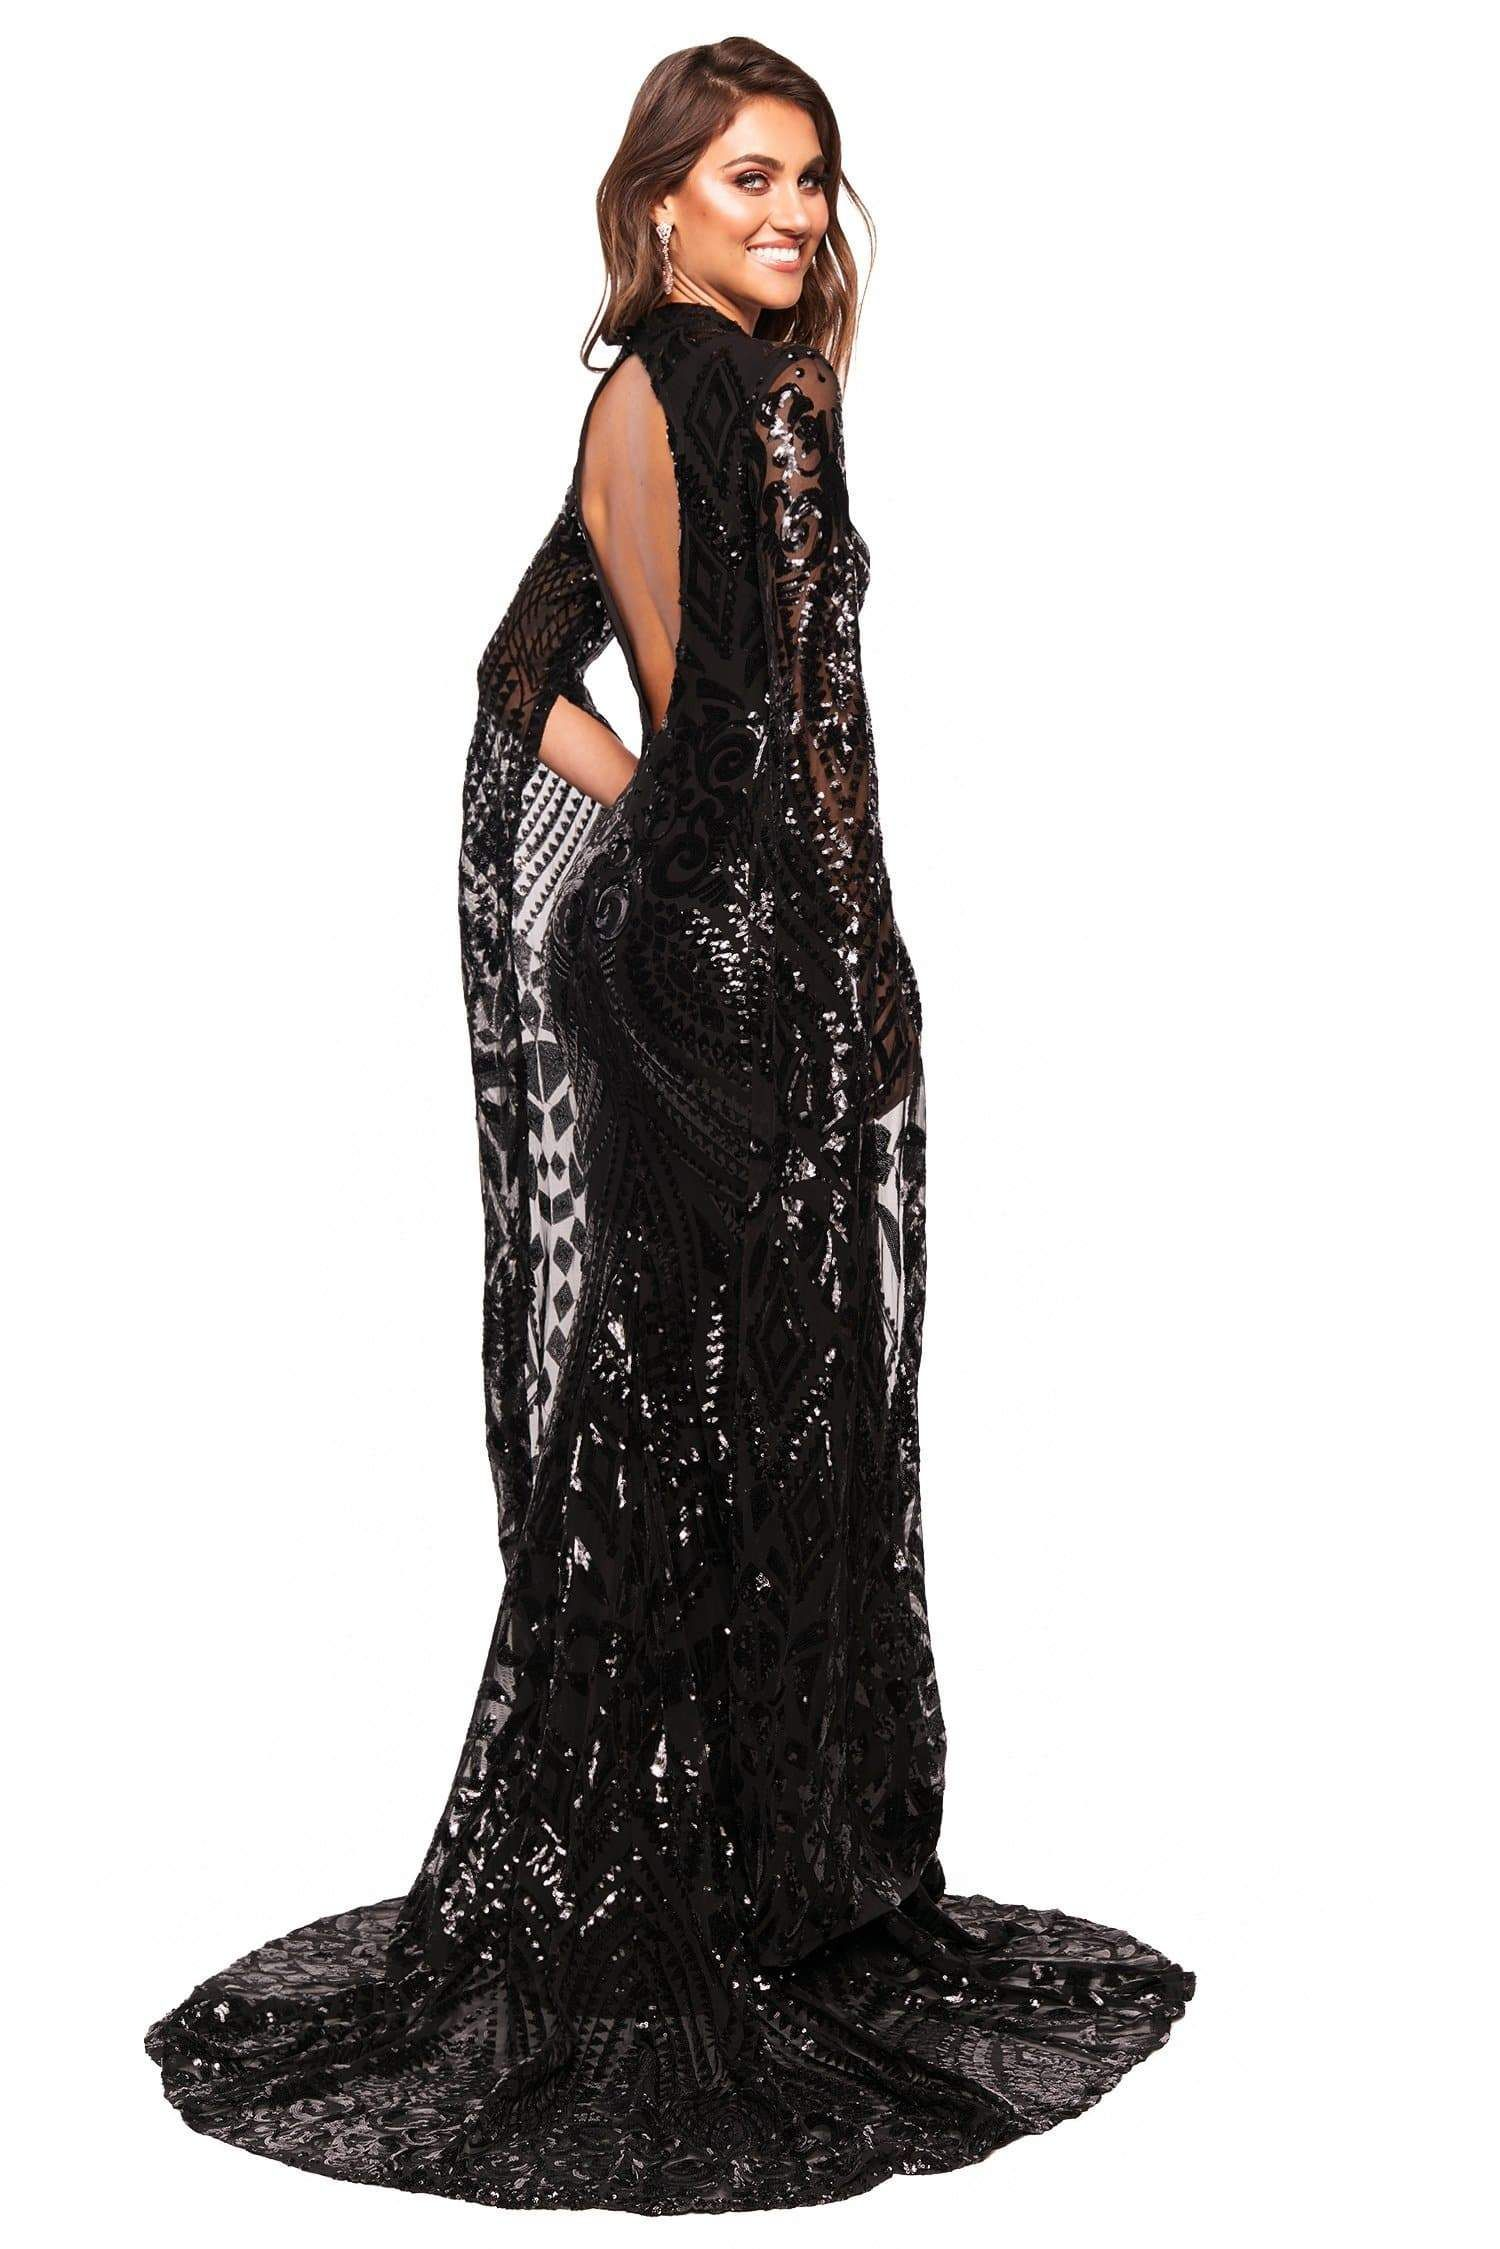 A N Luxe Kenya Gown Black In 2020 Prom Dresses Blue Gowns Dresses